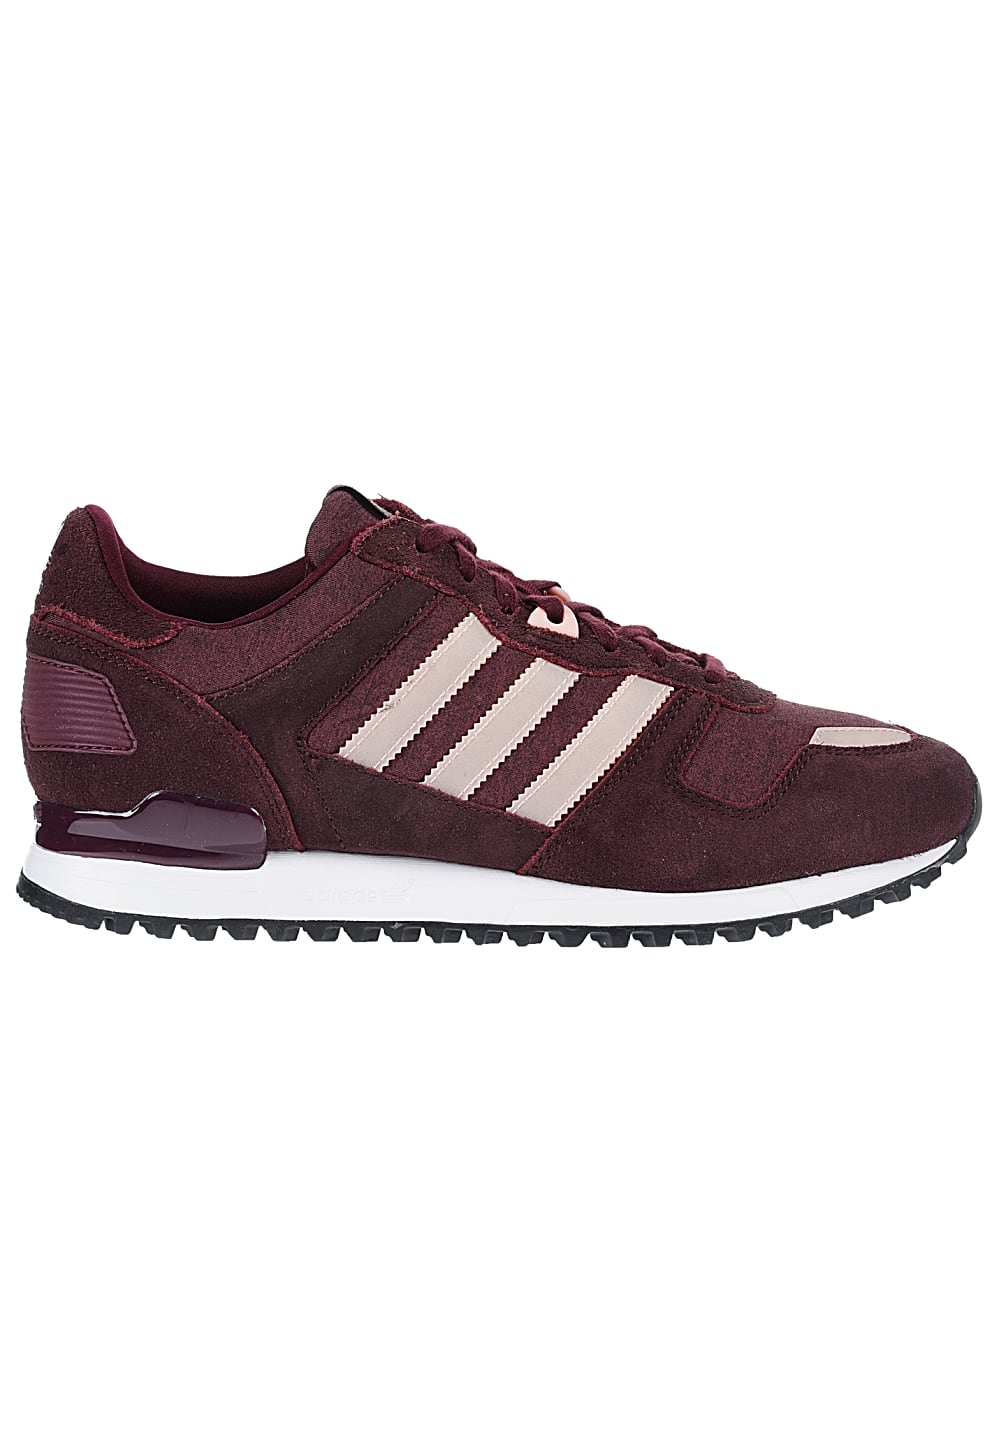 adidas zx 700 sneaker f r damen rot planet sports. Black Bedroom Furniture Sets. Home Design Ideas